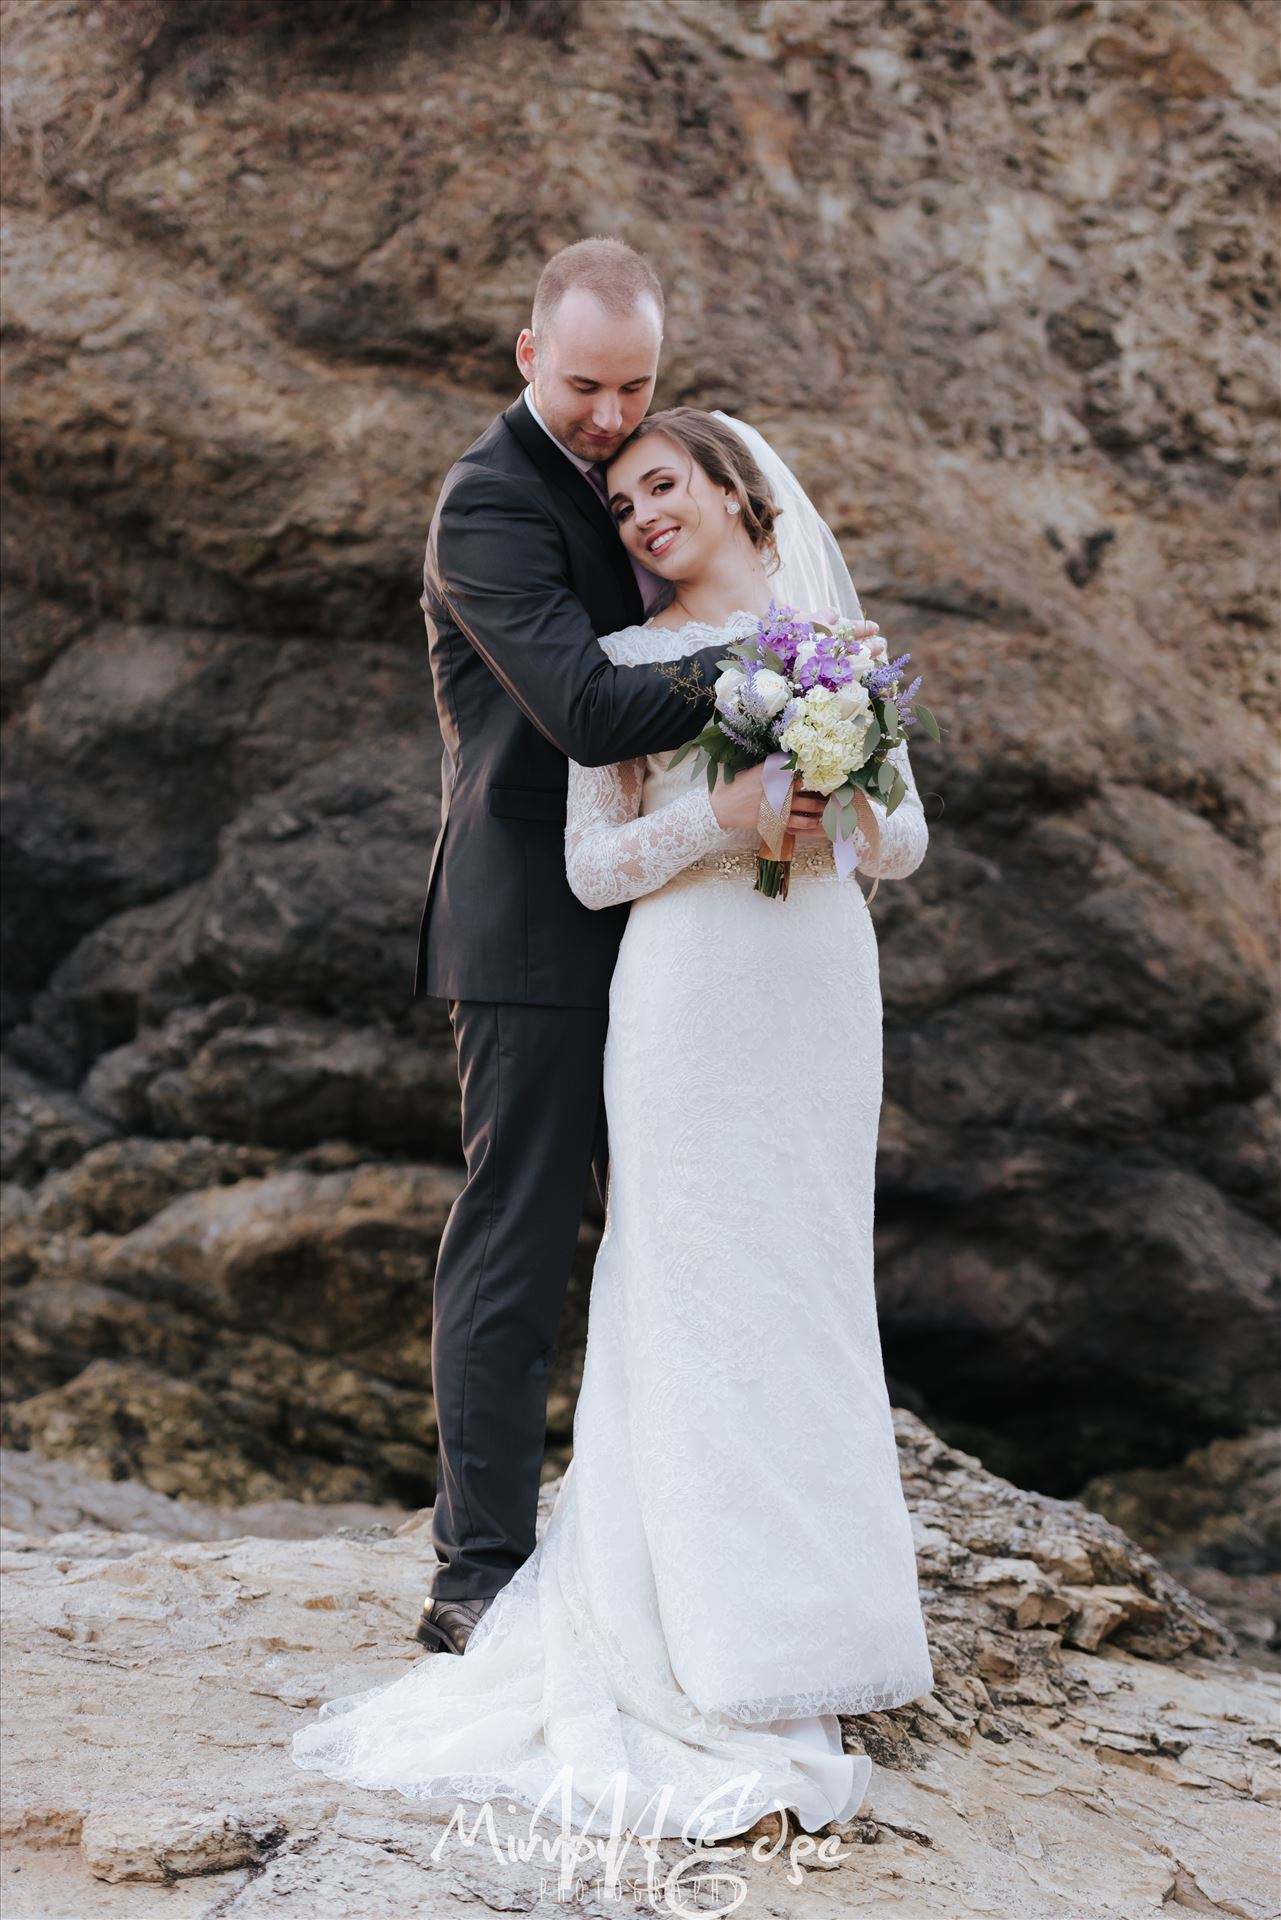 Shell Beach Wedding Bride and Groom - Intimate Wedding Ceremony at Dinosaur Caves Park in Shell Beach, Pismo Beach, California overlooking Pismo Beach.  San Luis Obispo Wedding Photography. by Sarah Williams